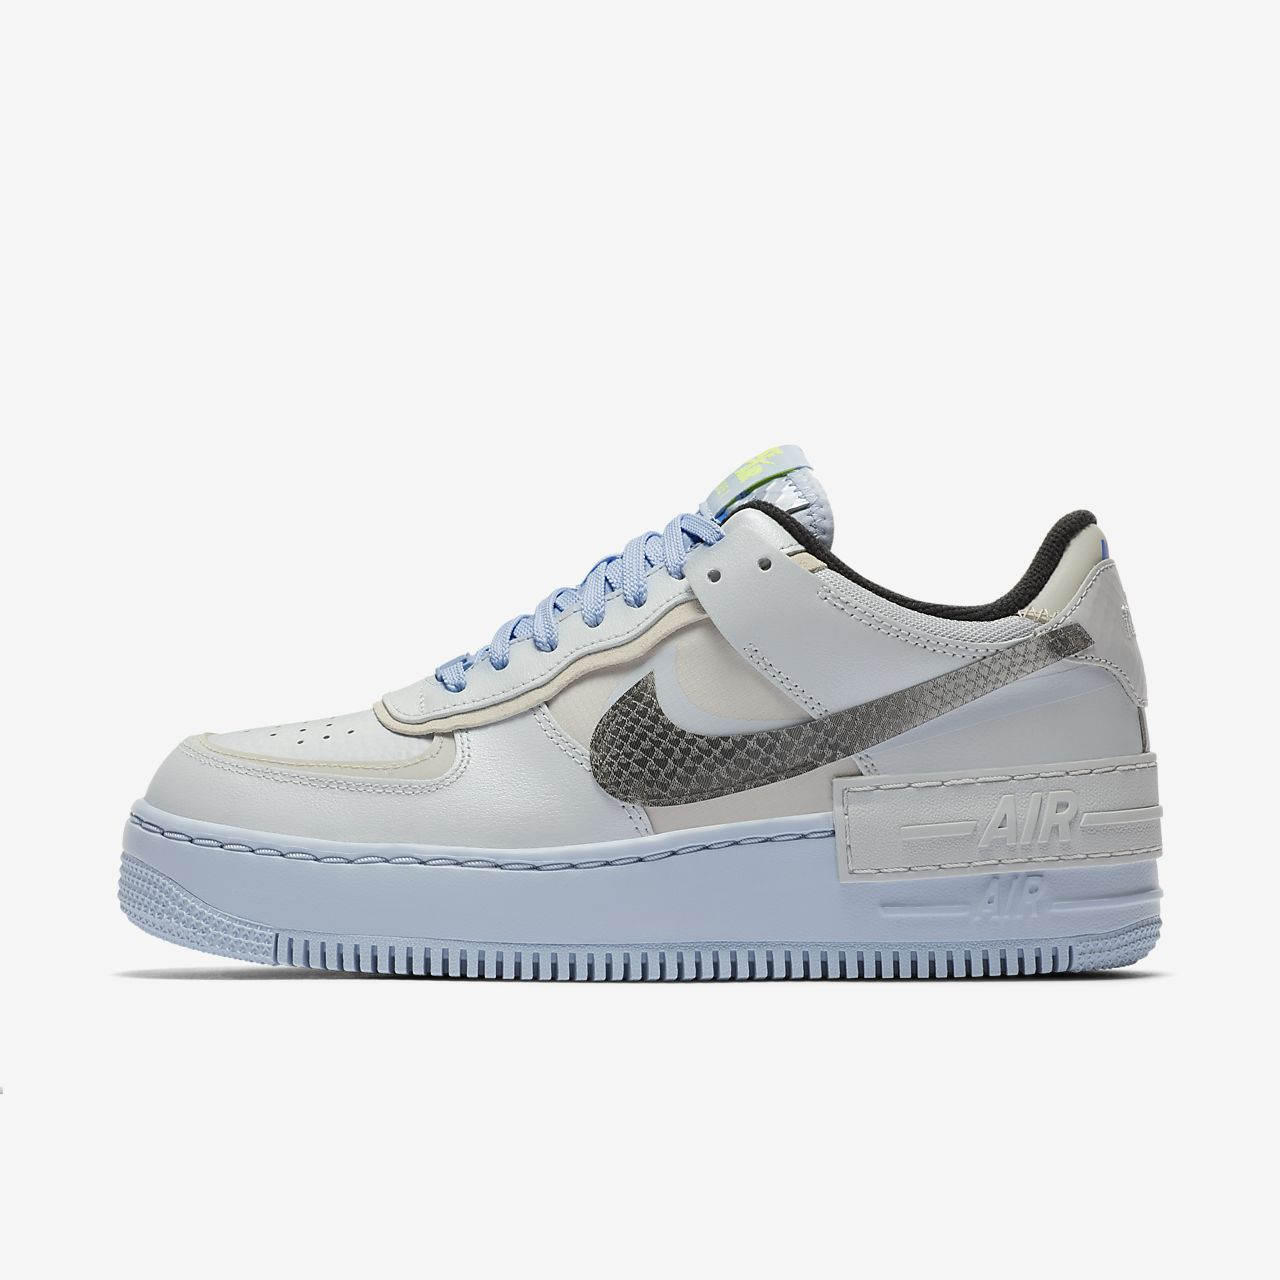 SNEAKERS AIR FORCE 1 SHADOW Nike Buty sportowe męskie